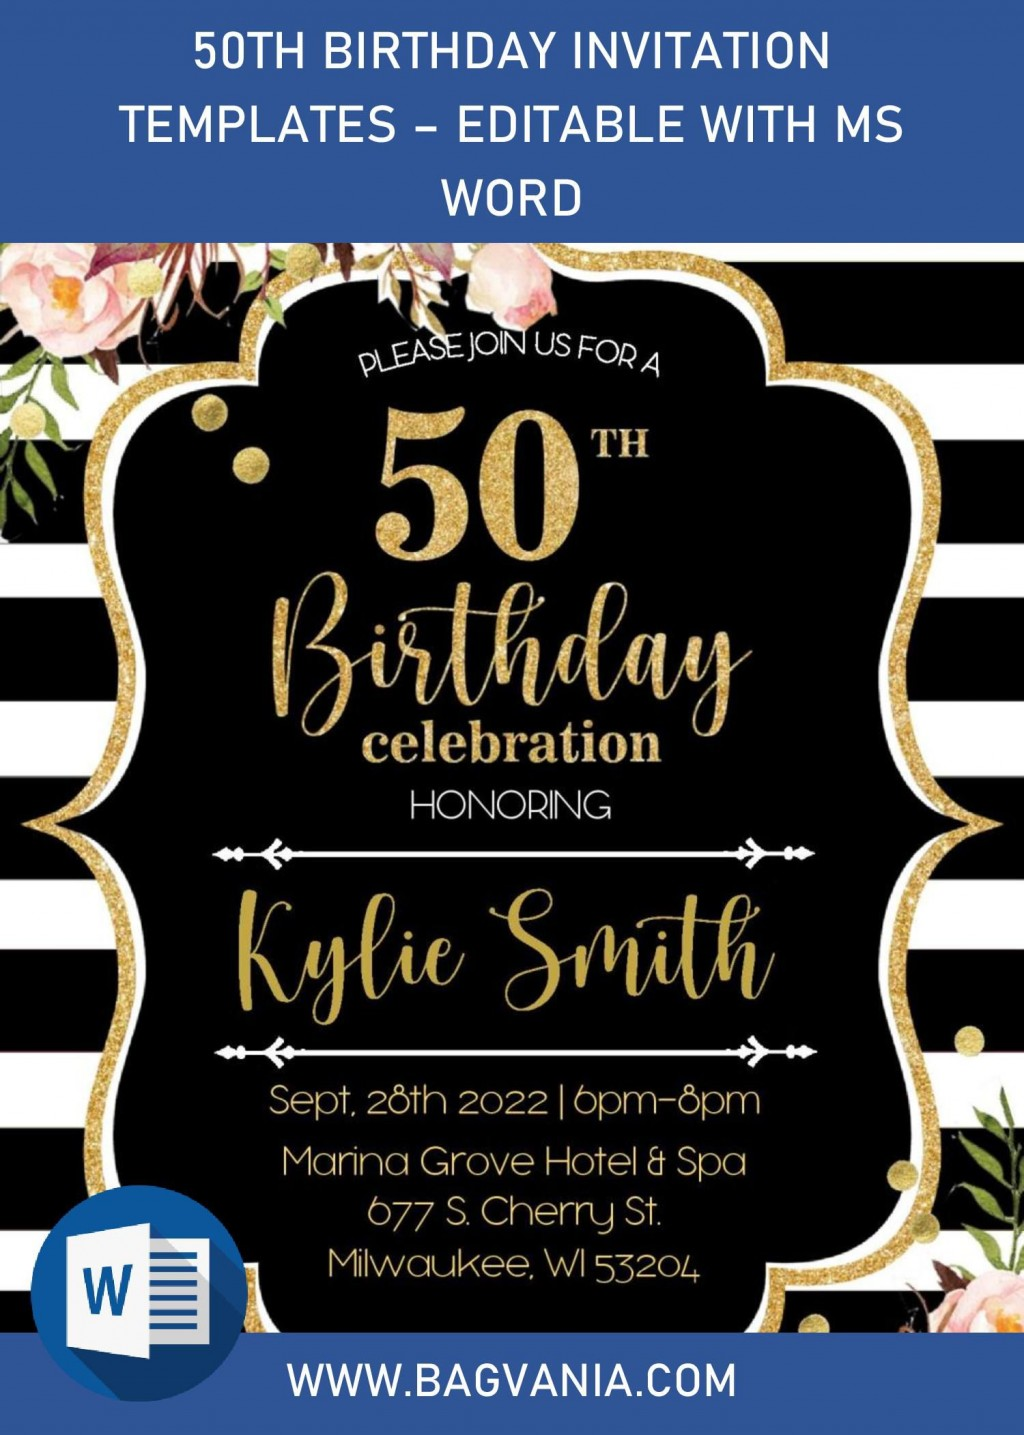 003 Phenomenal Microsoft Word 50th Birthday Invitation Template Highest Quality  Editable Wedding AnniversaryLarge